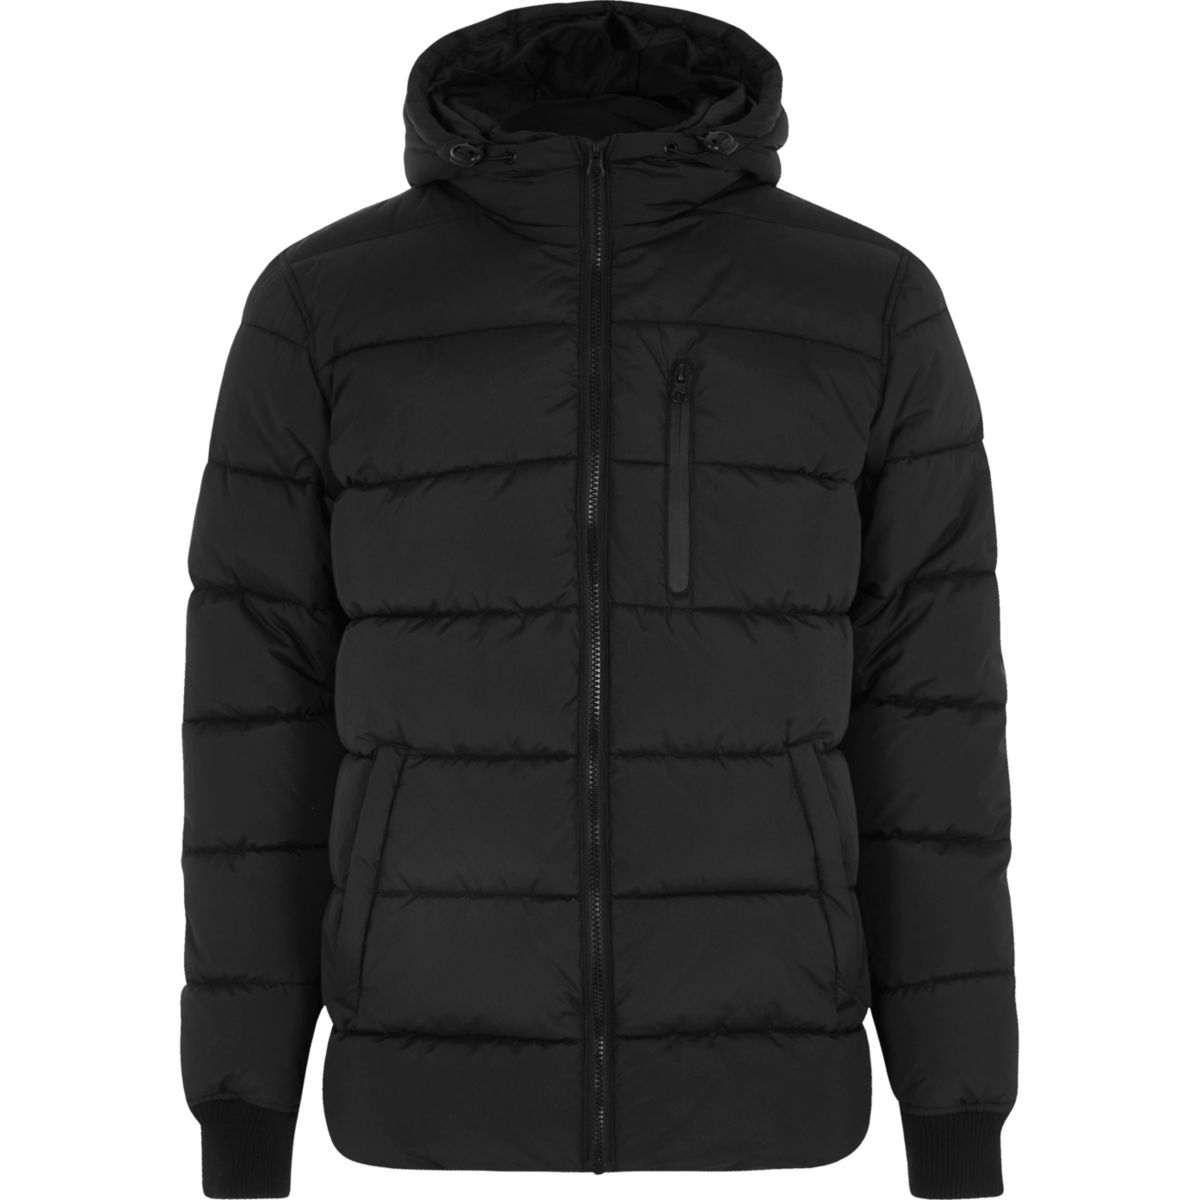 Black hooded puffer jacket - Jackets - Coats & Jackets - men